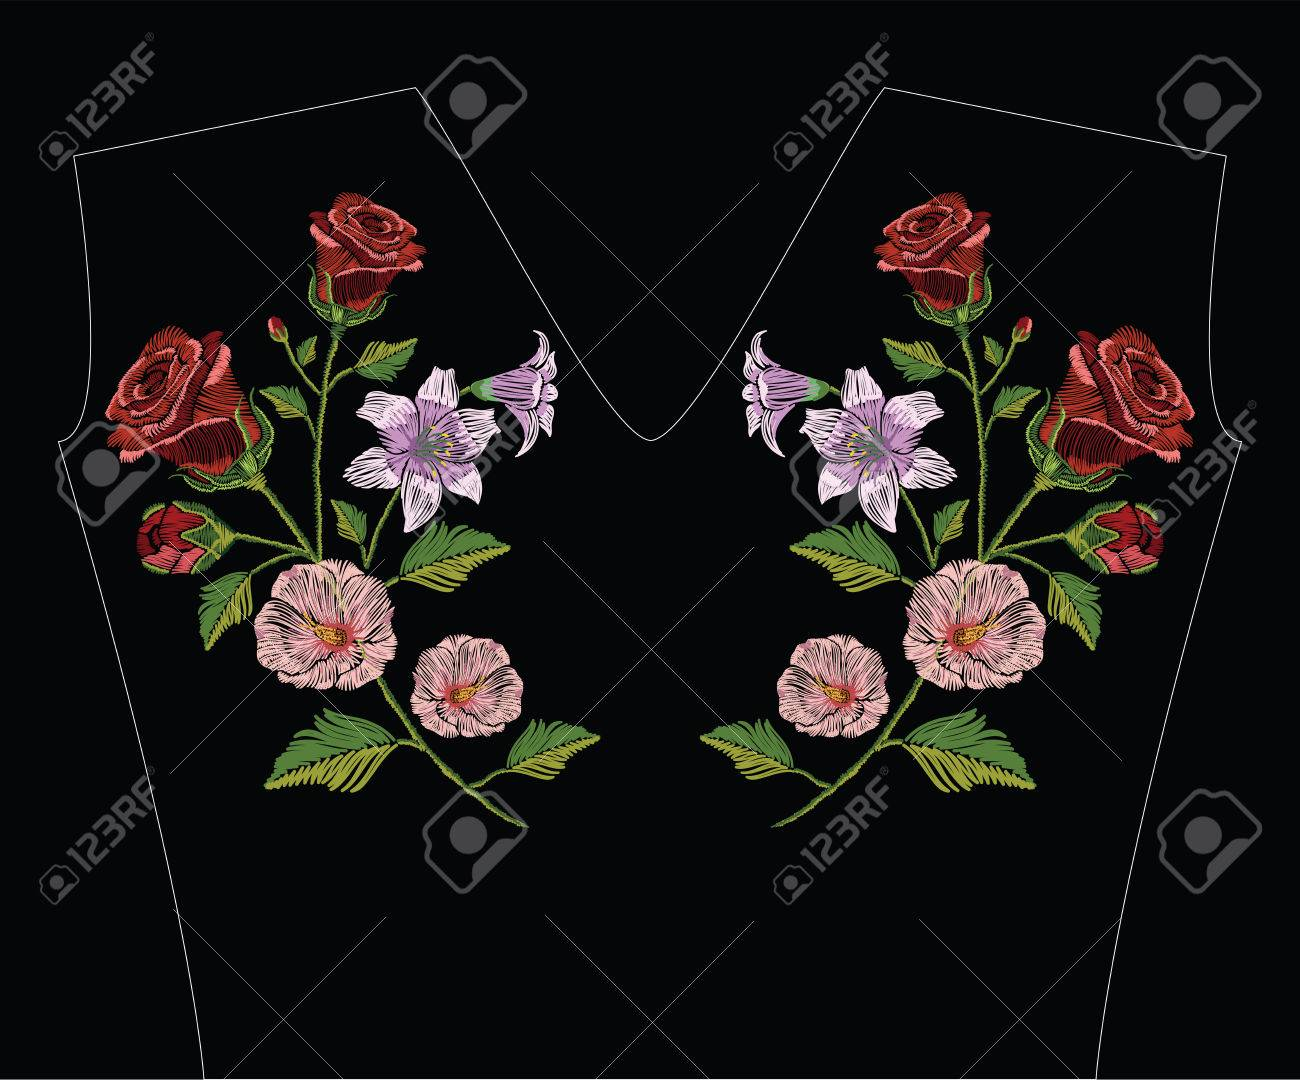 Embroidery stitches with hibiscus, rose and lily in pastel colors. Vector fashion ornament illustration on black background for floral decoration. Pattern for textile. Print for fabrics and t-shirts. - 82070742